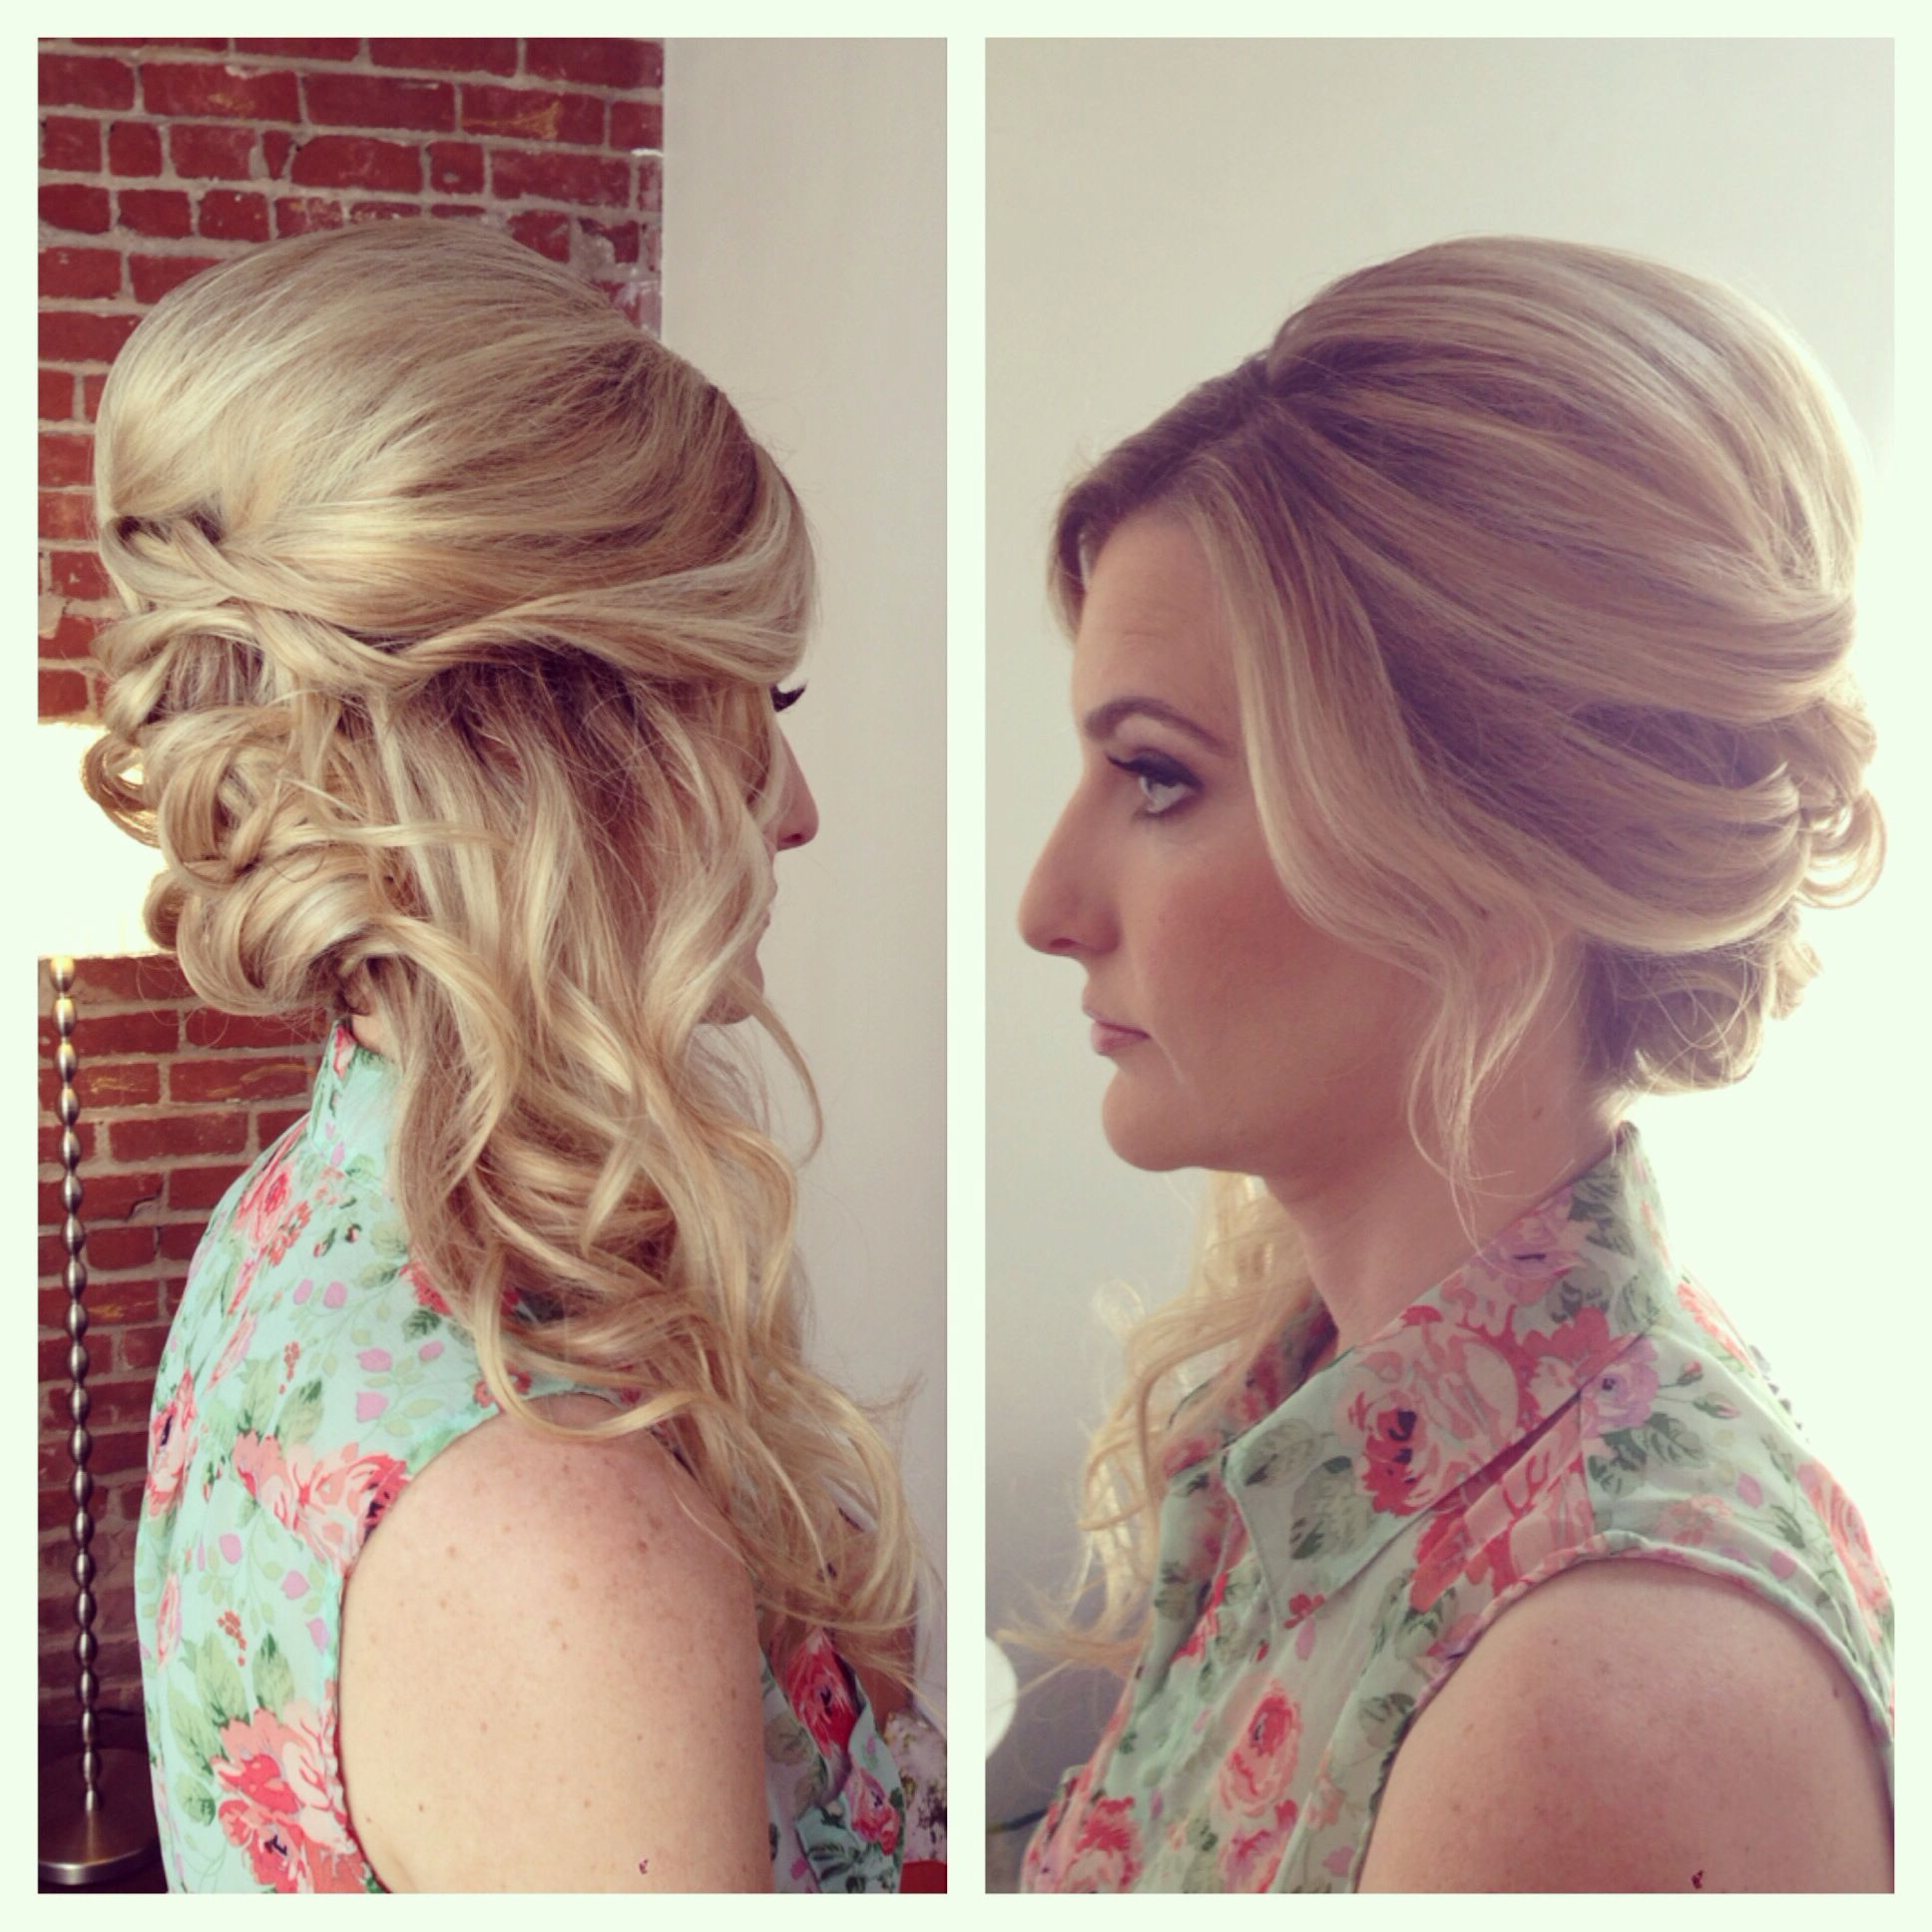 Most Current Side Swept Braid Updo Hairstyles Pertaining To Side Swept Updo, Side Swept Hair, Curls, Wedding Hair (View 6 of 20)